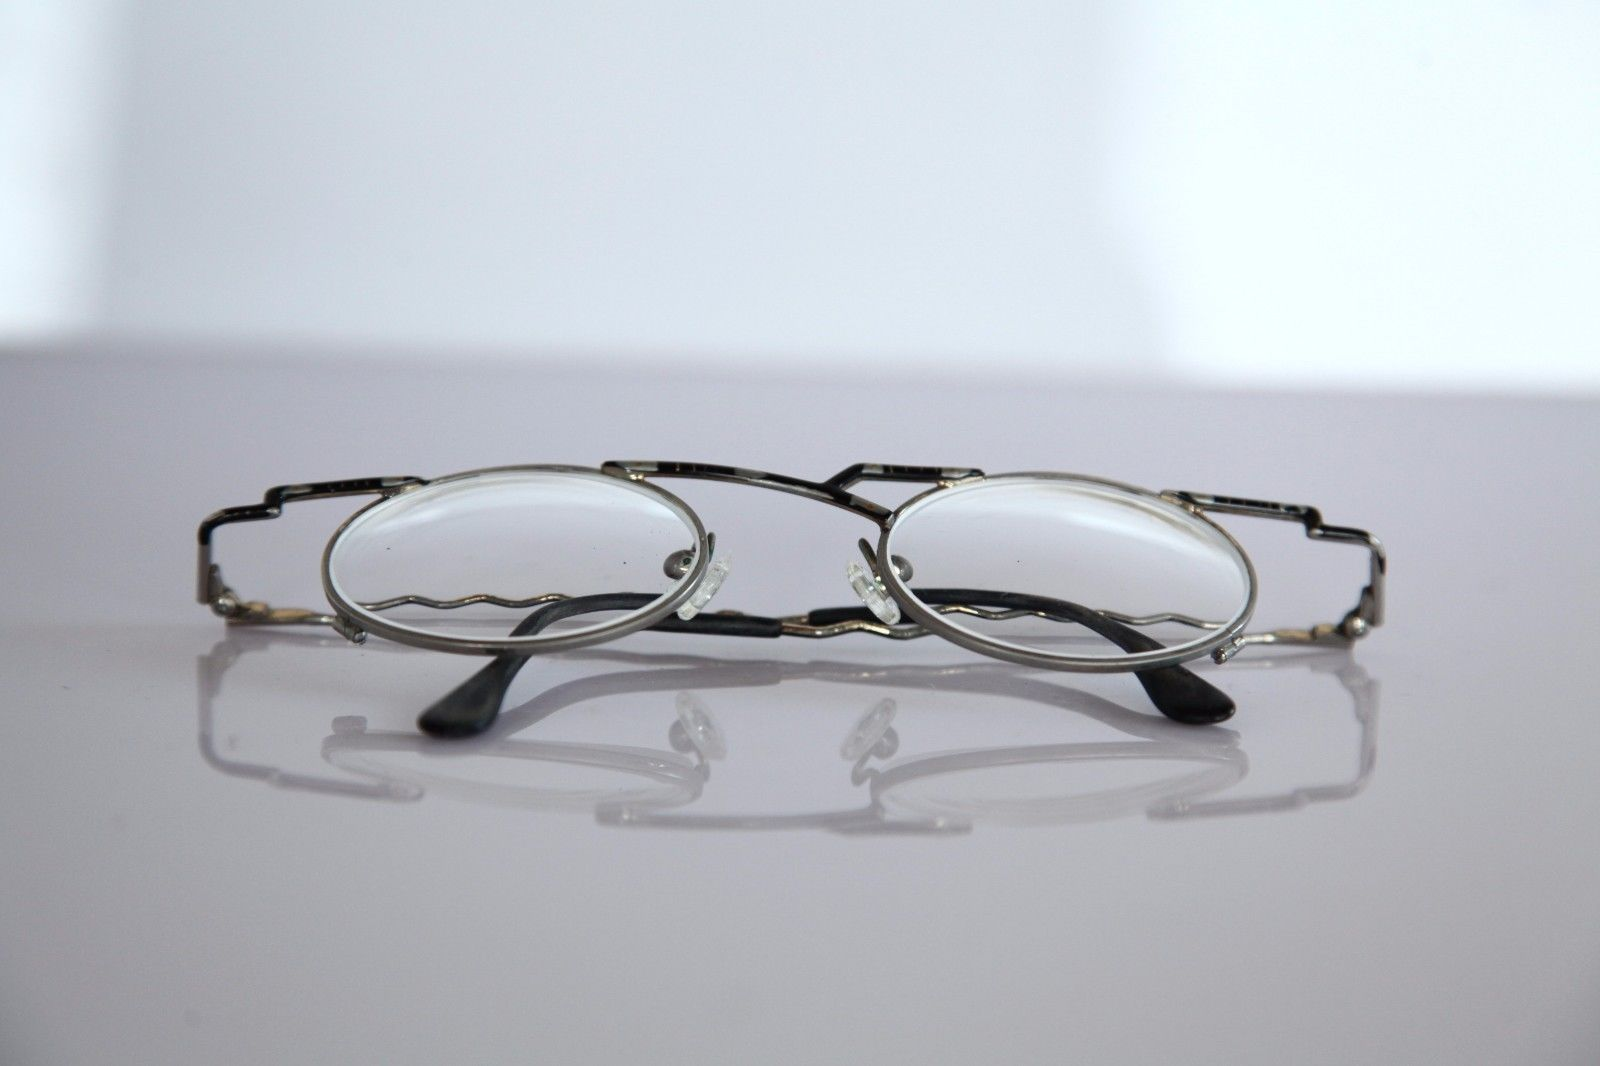 Eyewear, Silver, Black Frame, RX-Able Prescription Lenses.